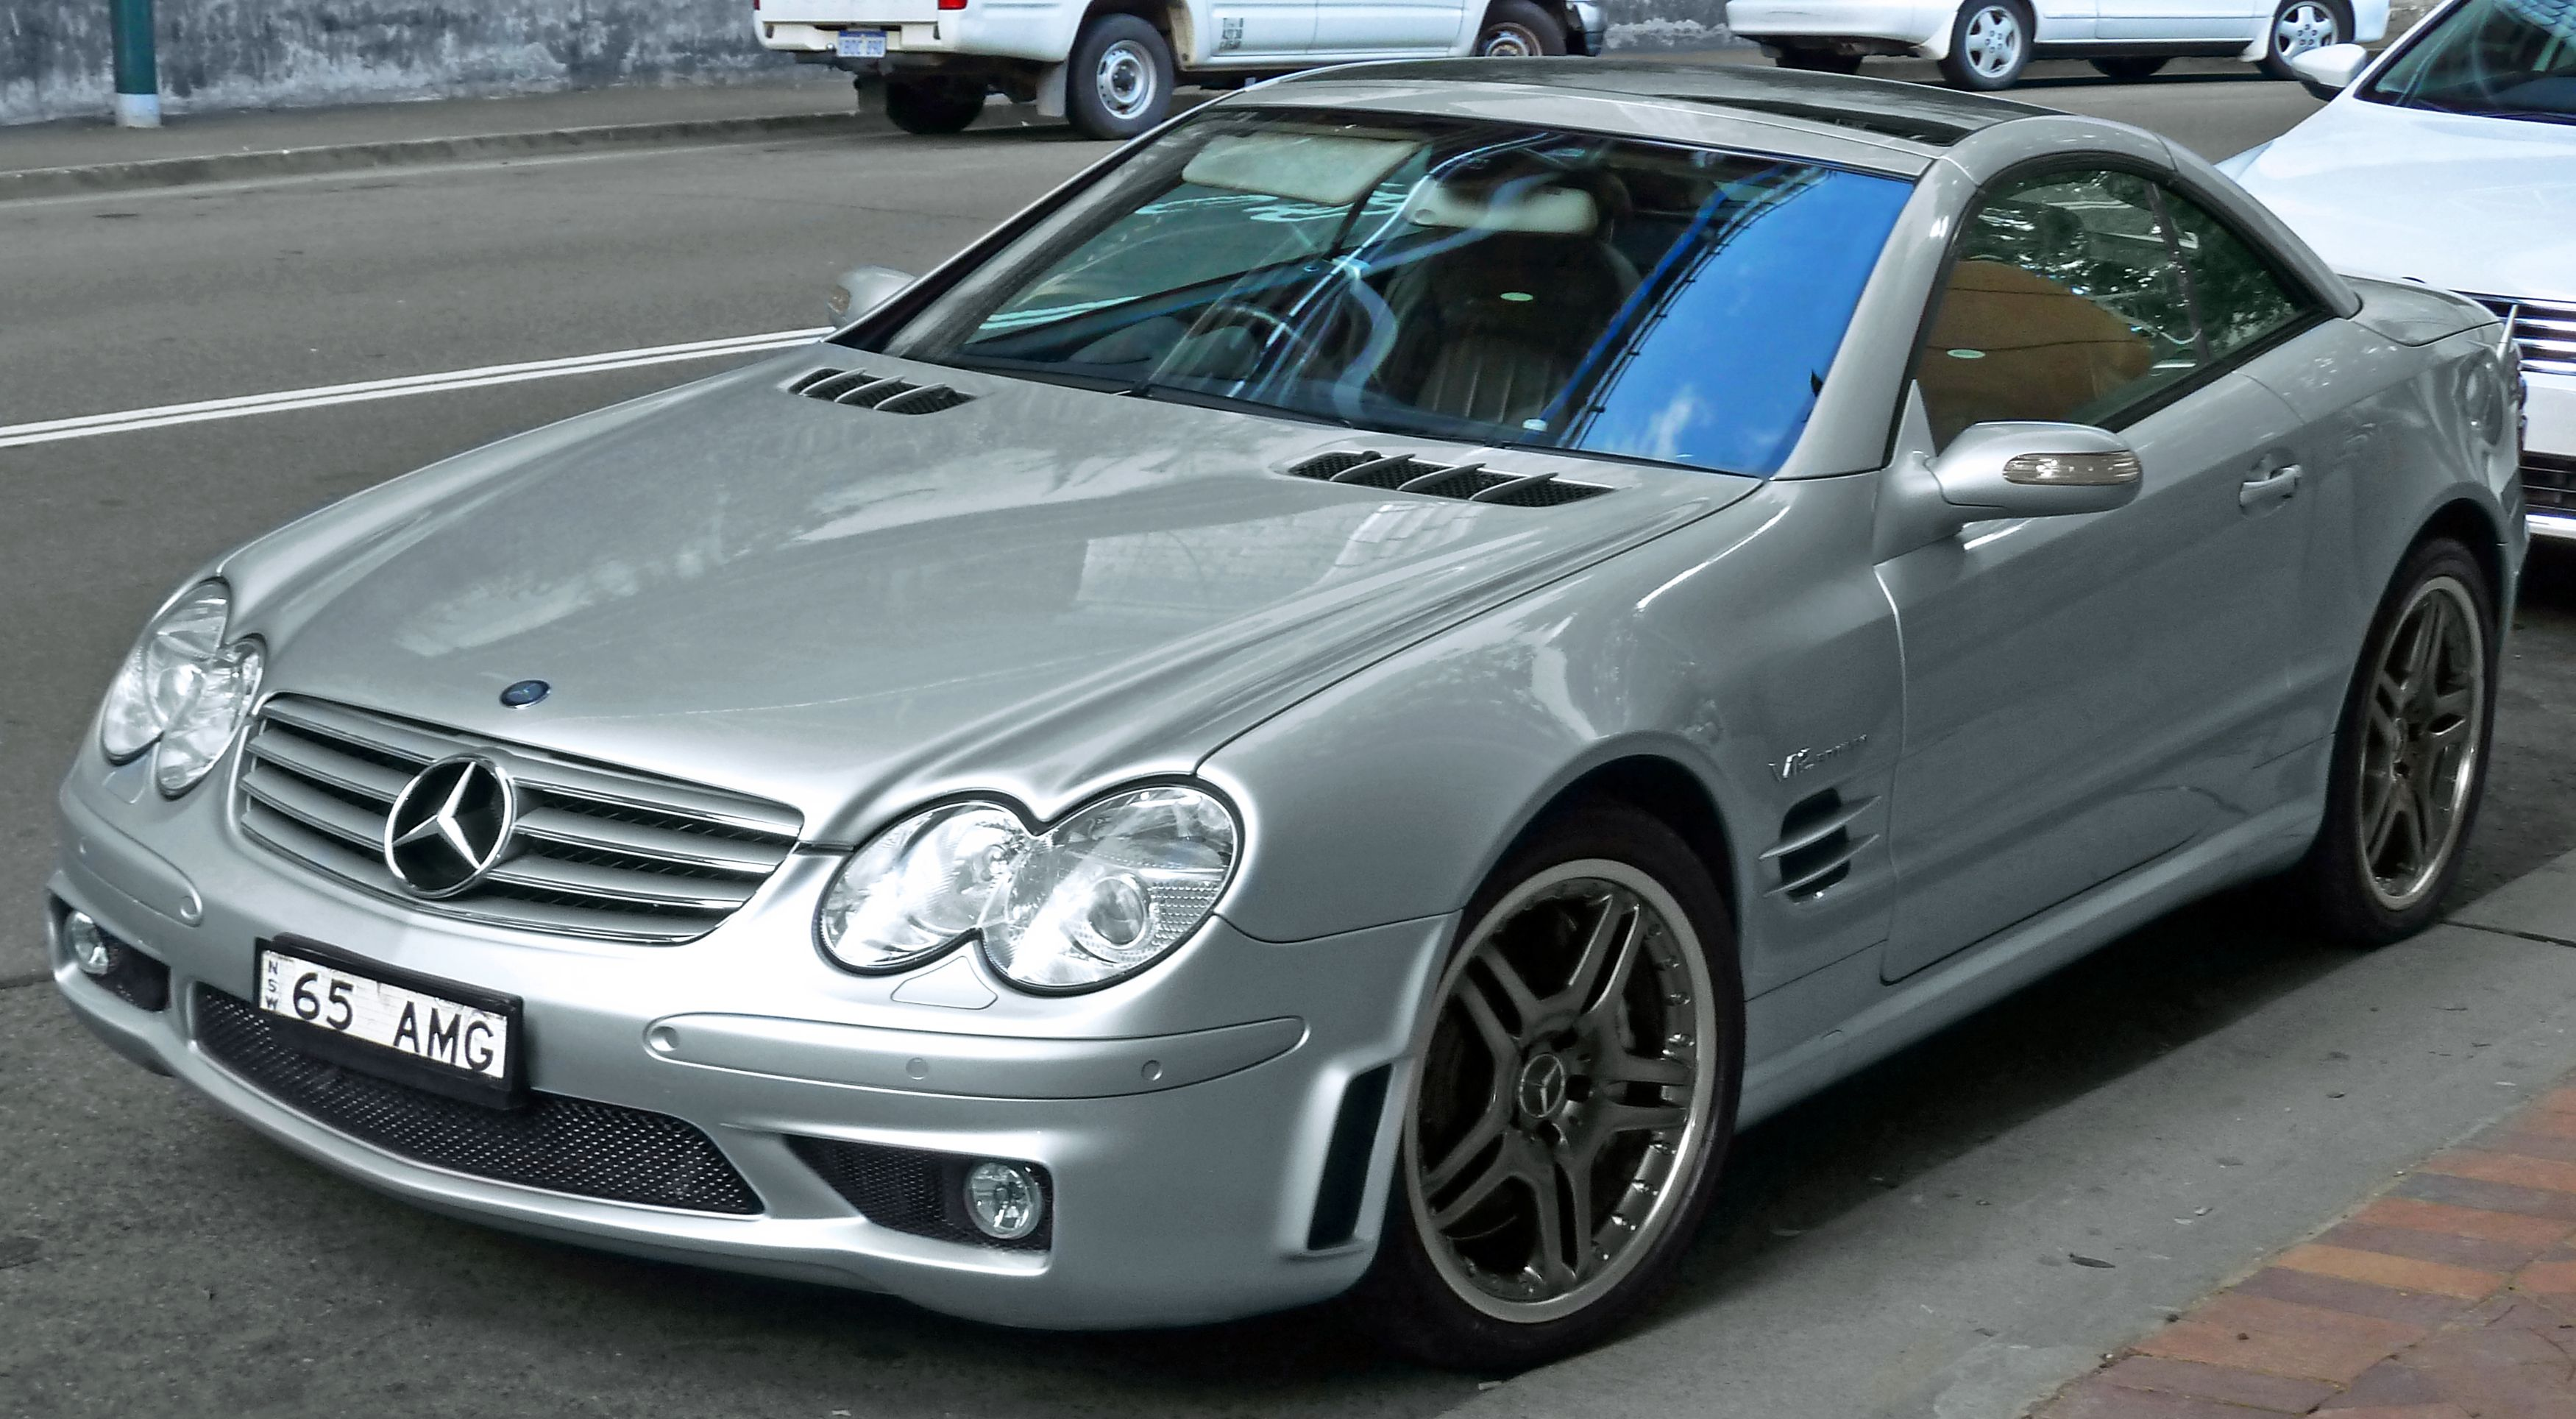 hatchback mercedes sports cars inspiration models tourer class image explore videoposter b passengercars benz